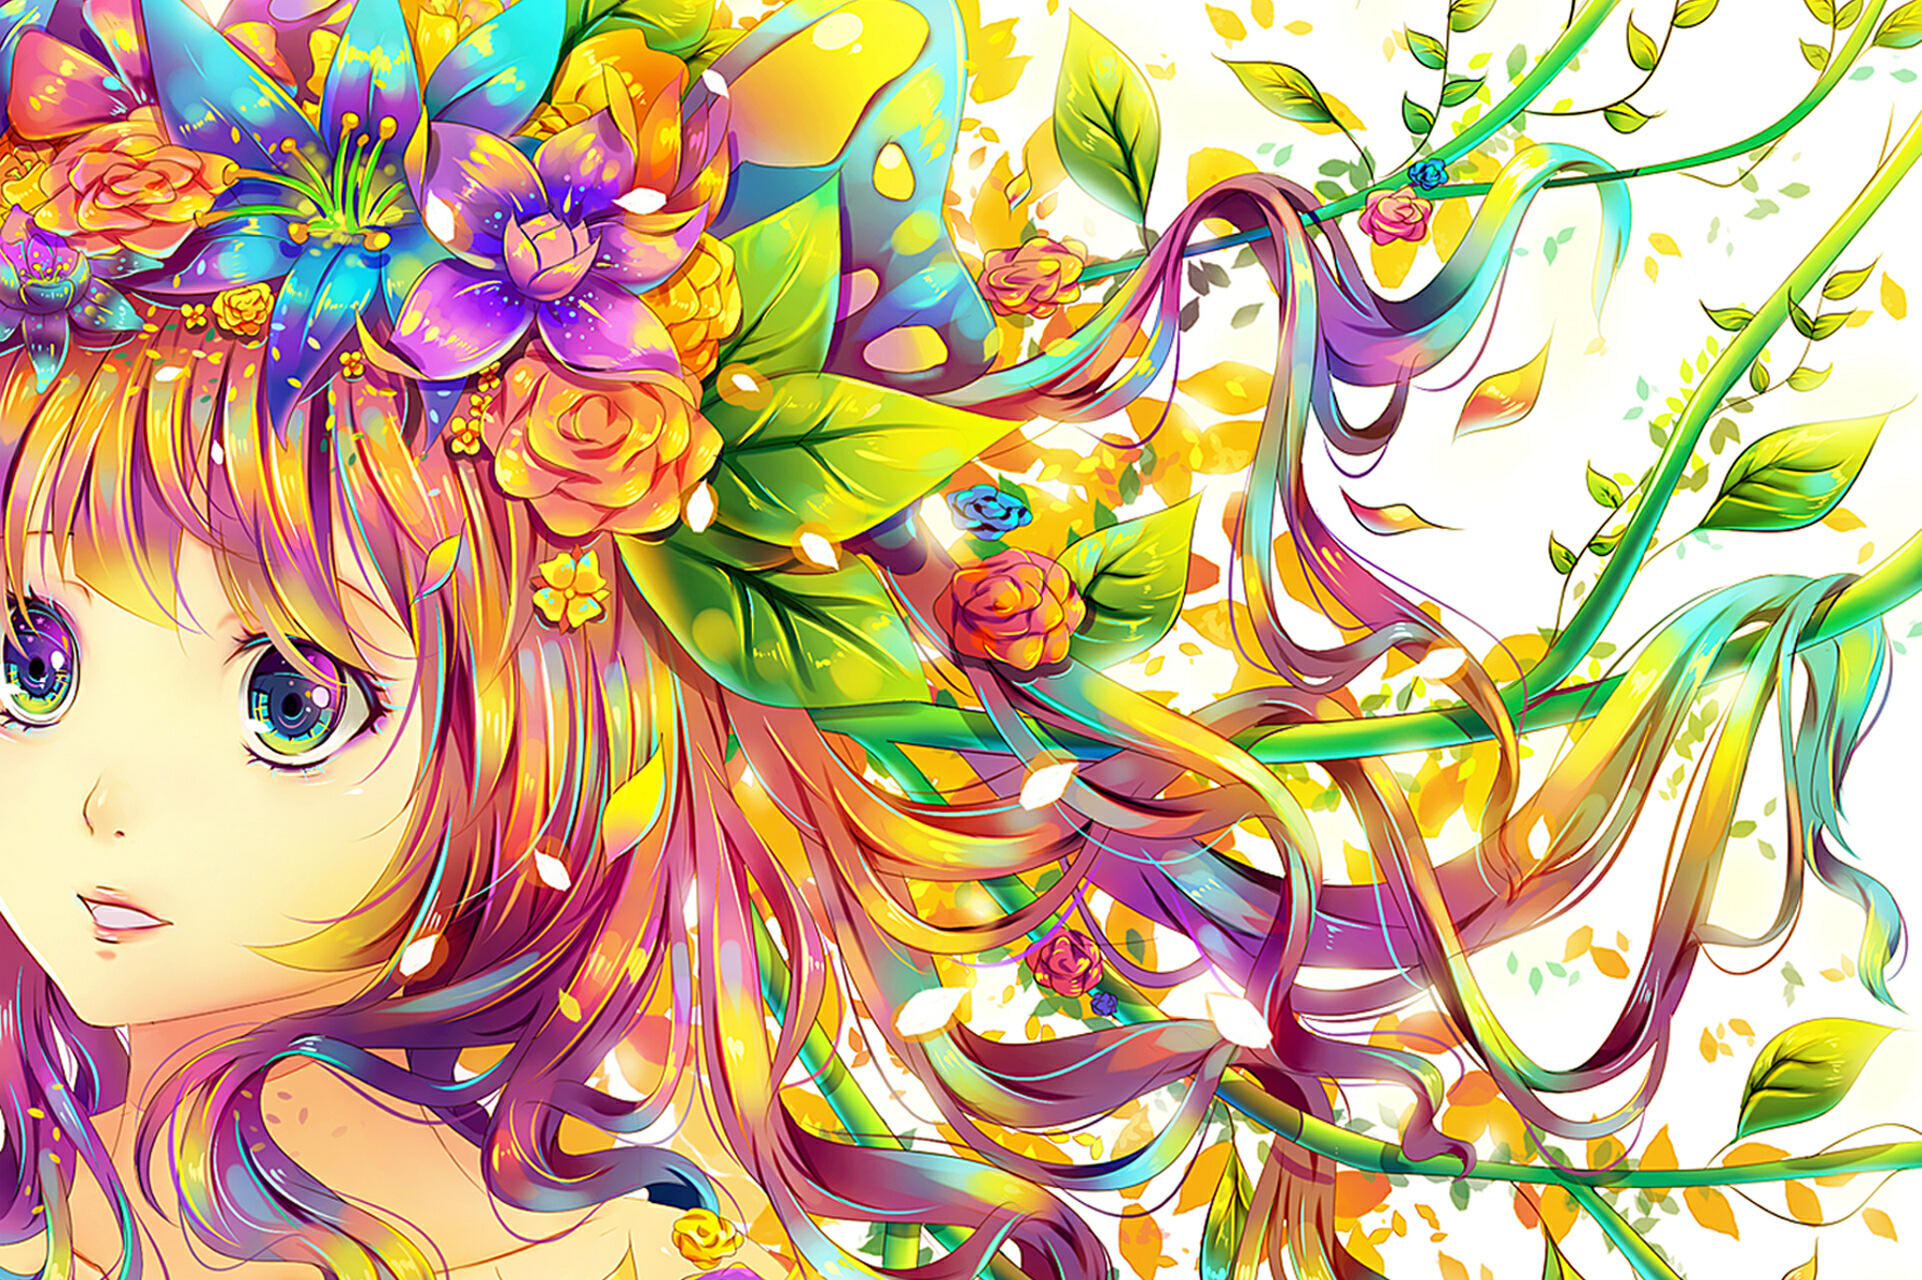 Colorful Anime Wallpaper 1920×1080